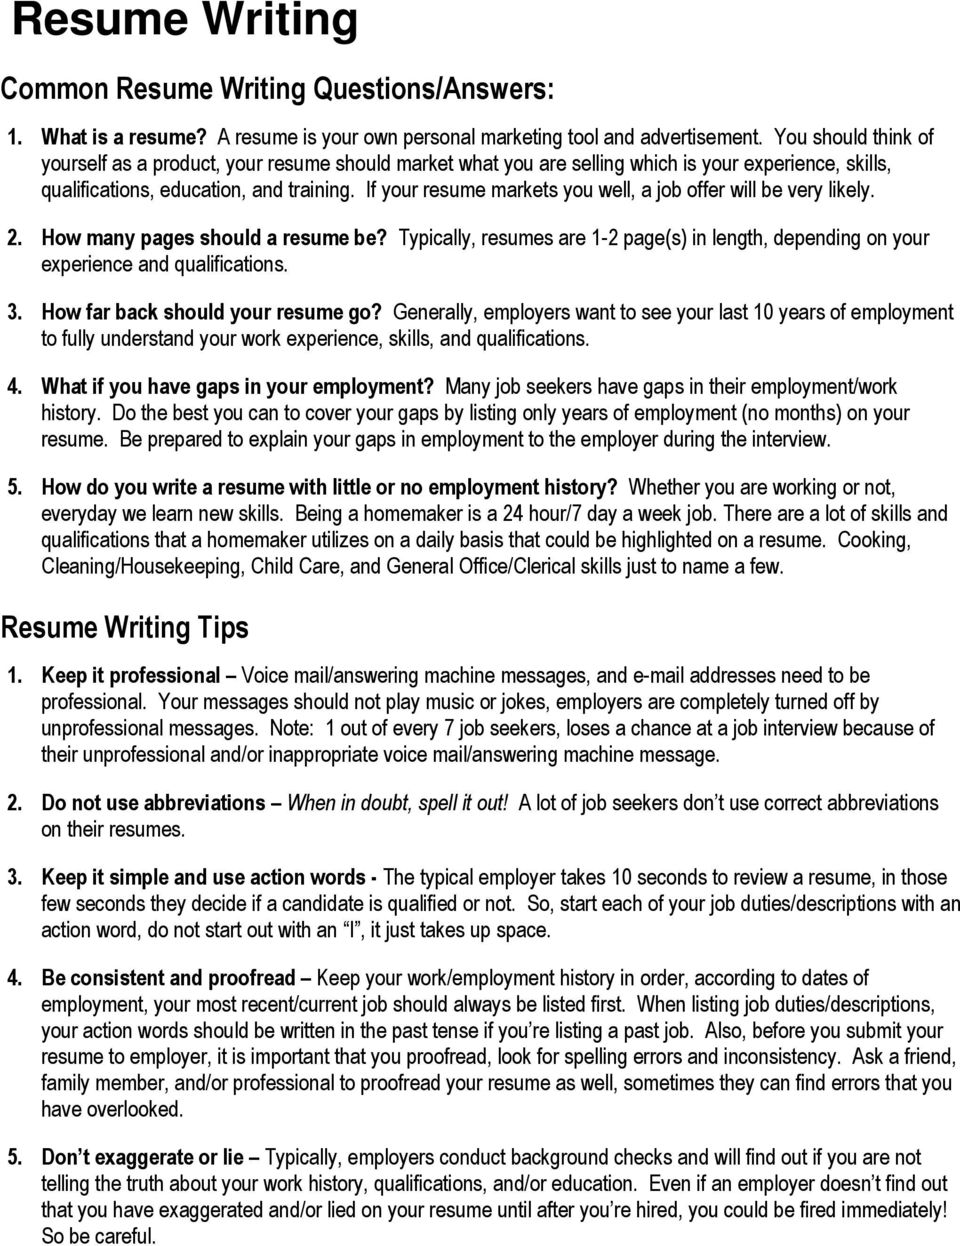 resume writing common questions answers tips pdf free abbreviate months on senior python Resume Abbreviate Months On Resume